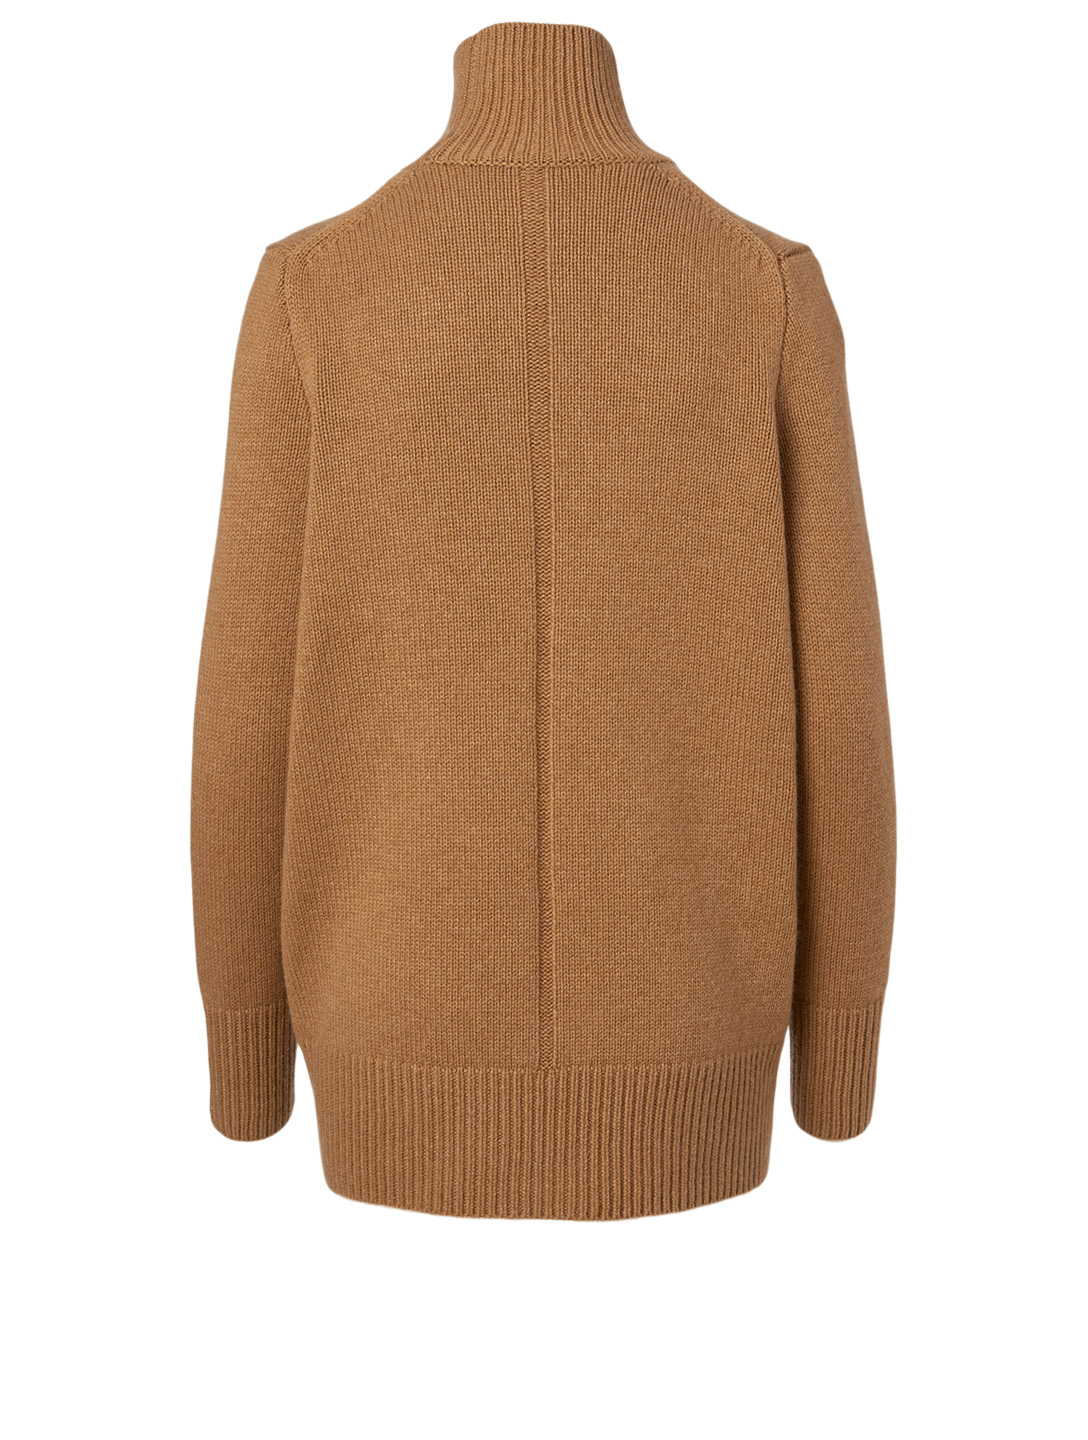 THE ROW Sadel Cashmere Sweater Women's Brown